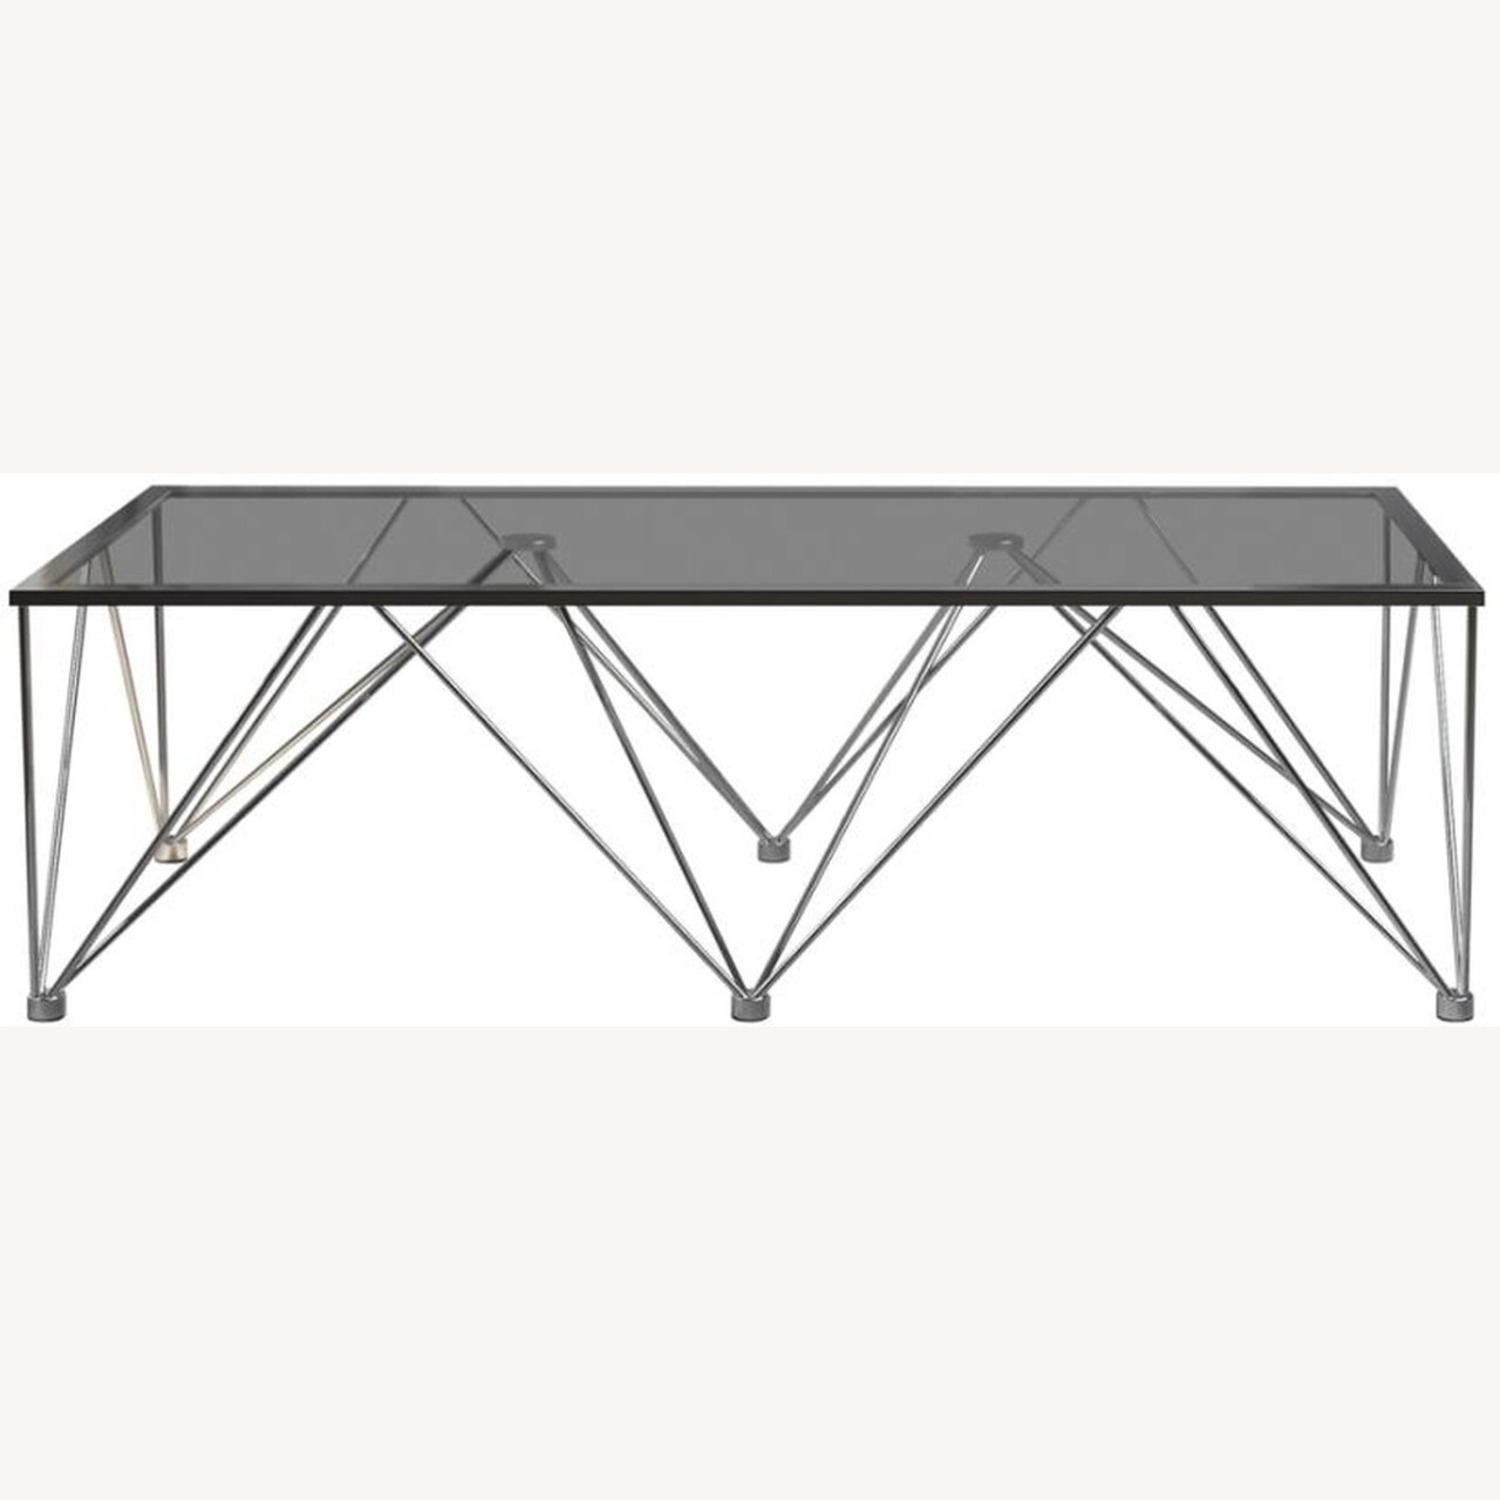 Modern Square Coffee Table In Grey Glass Top - image-0